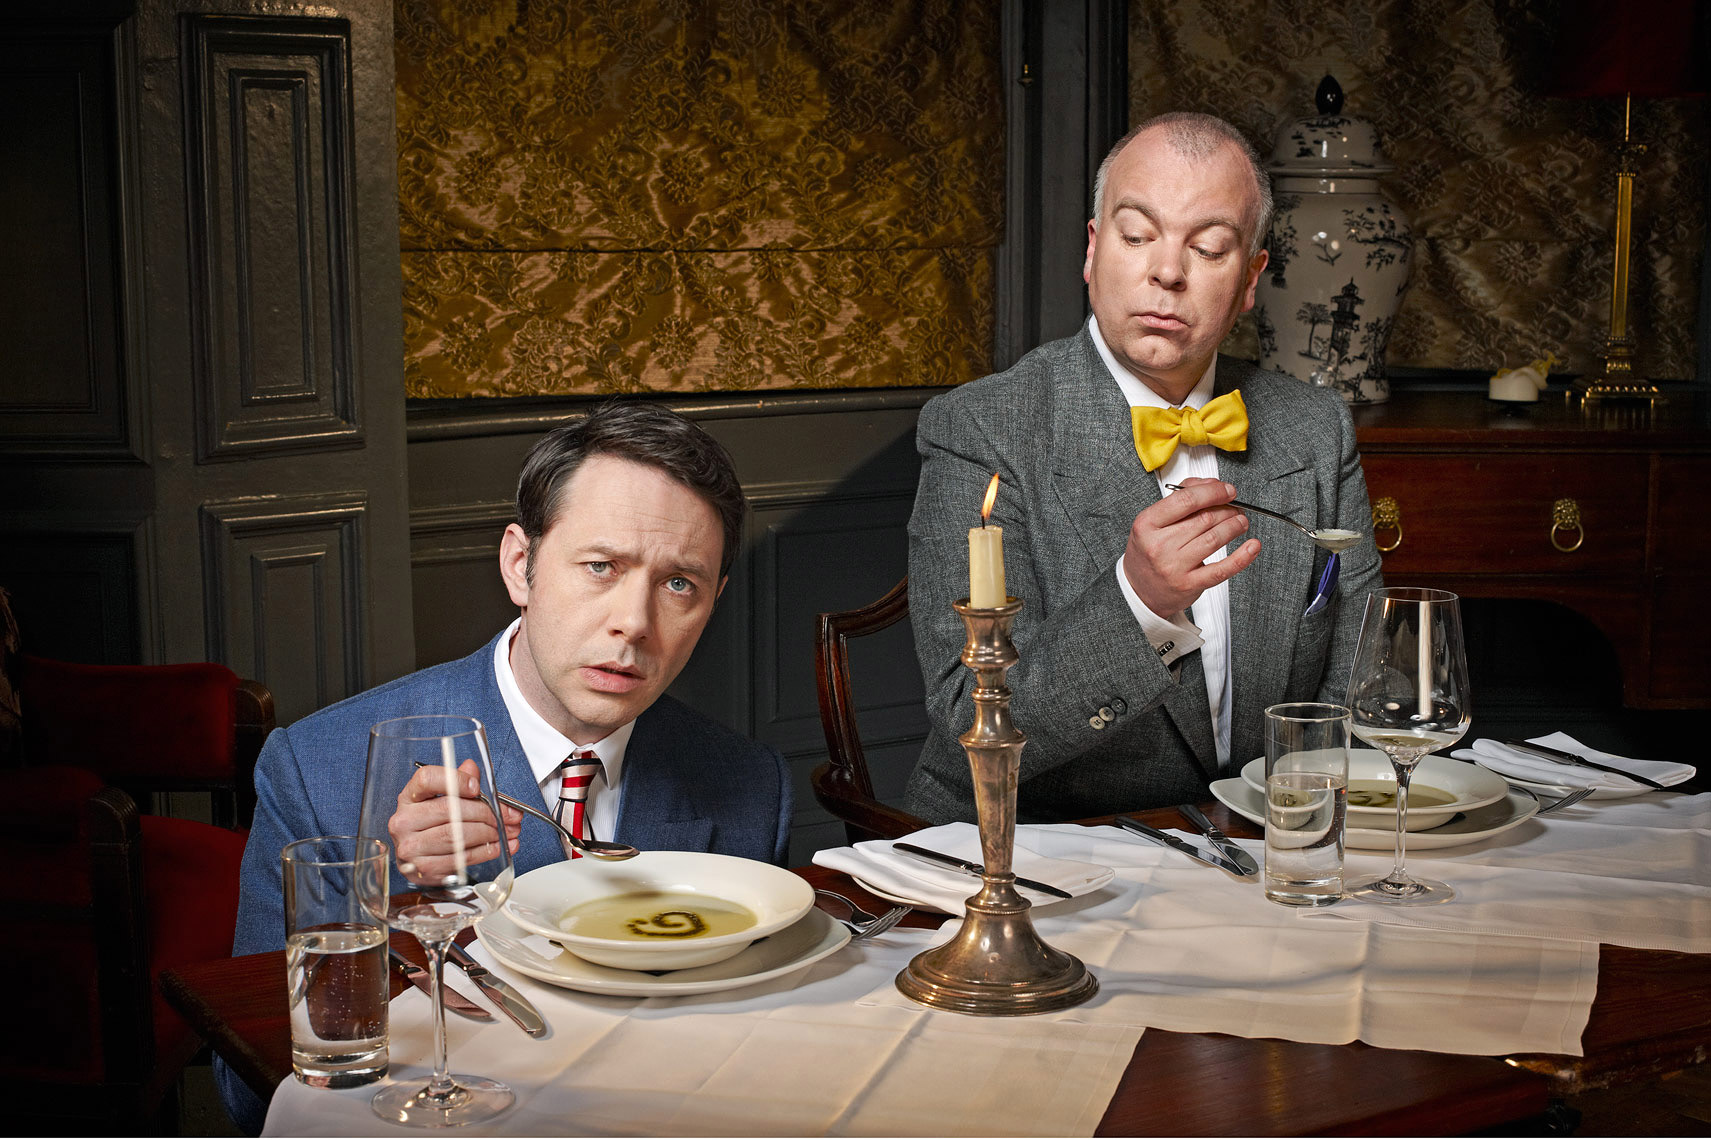 Reece shearsmith steve pemberton   Portrait  for BAFTA